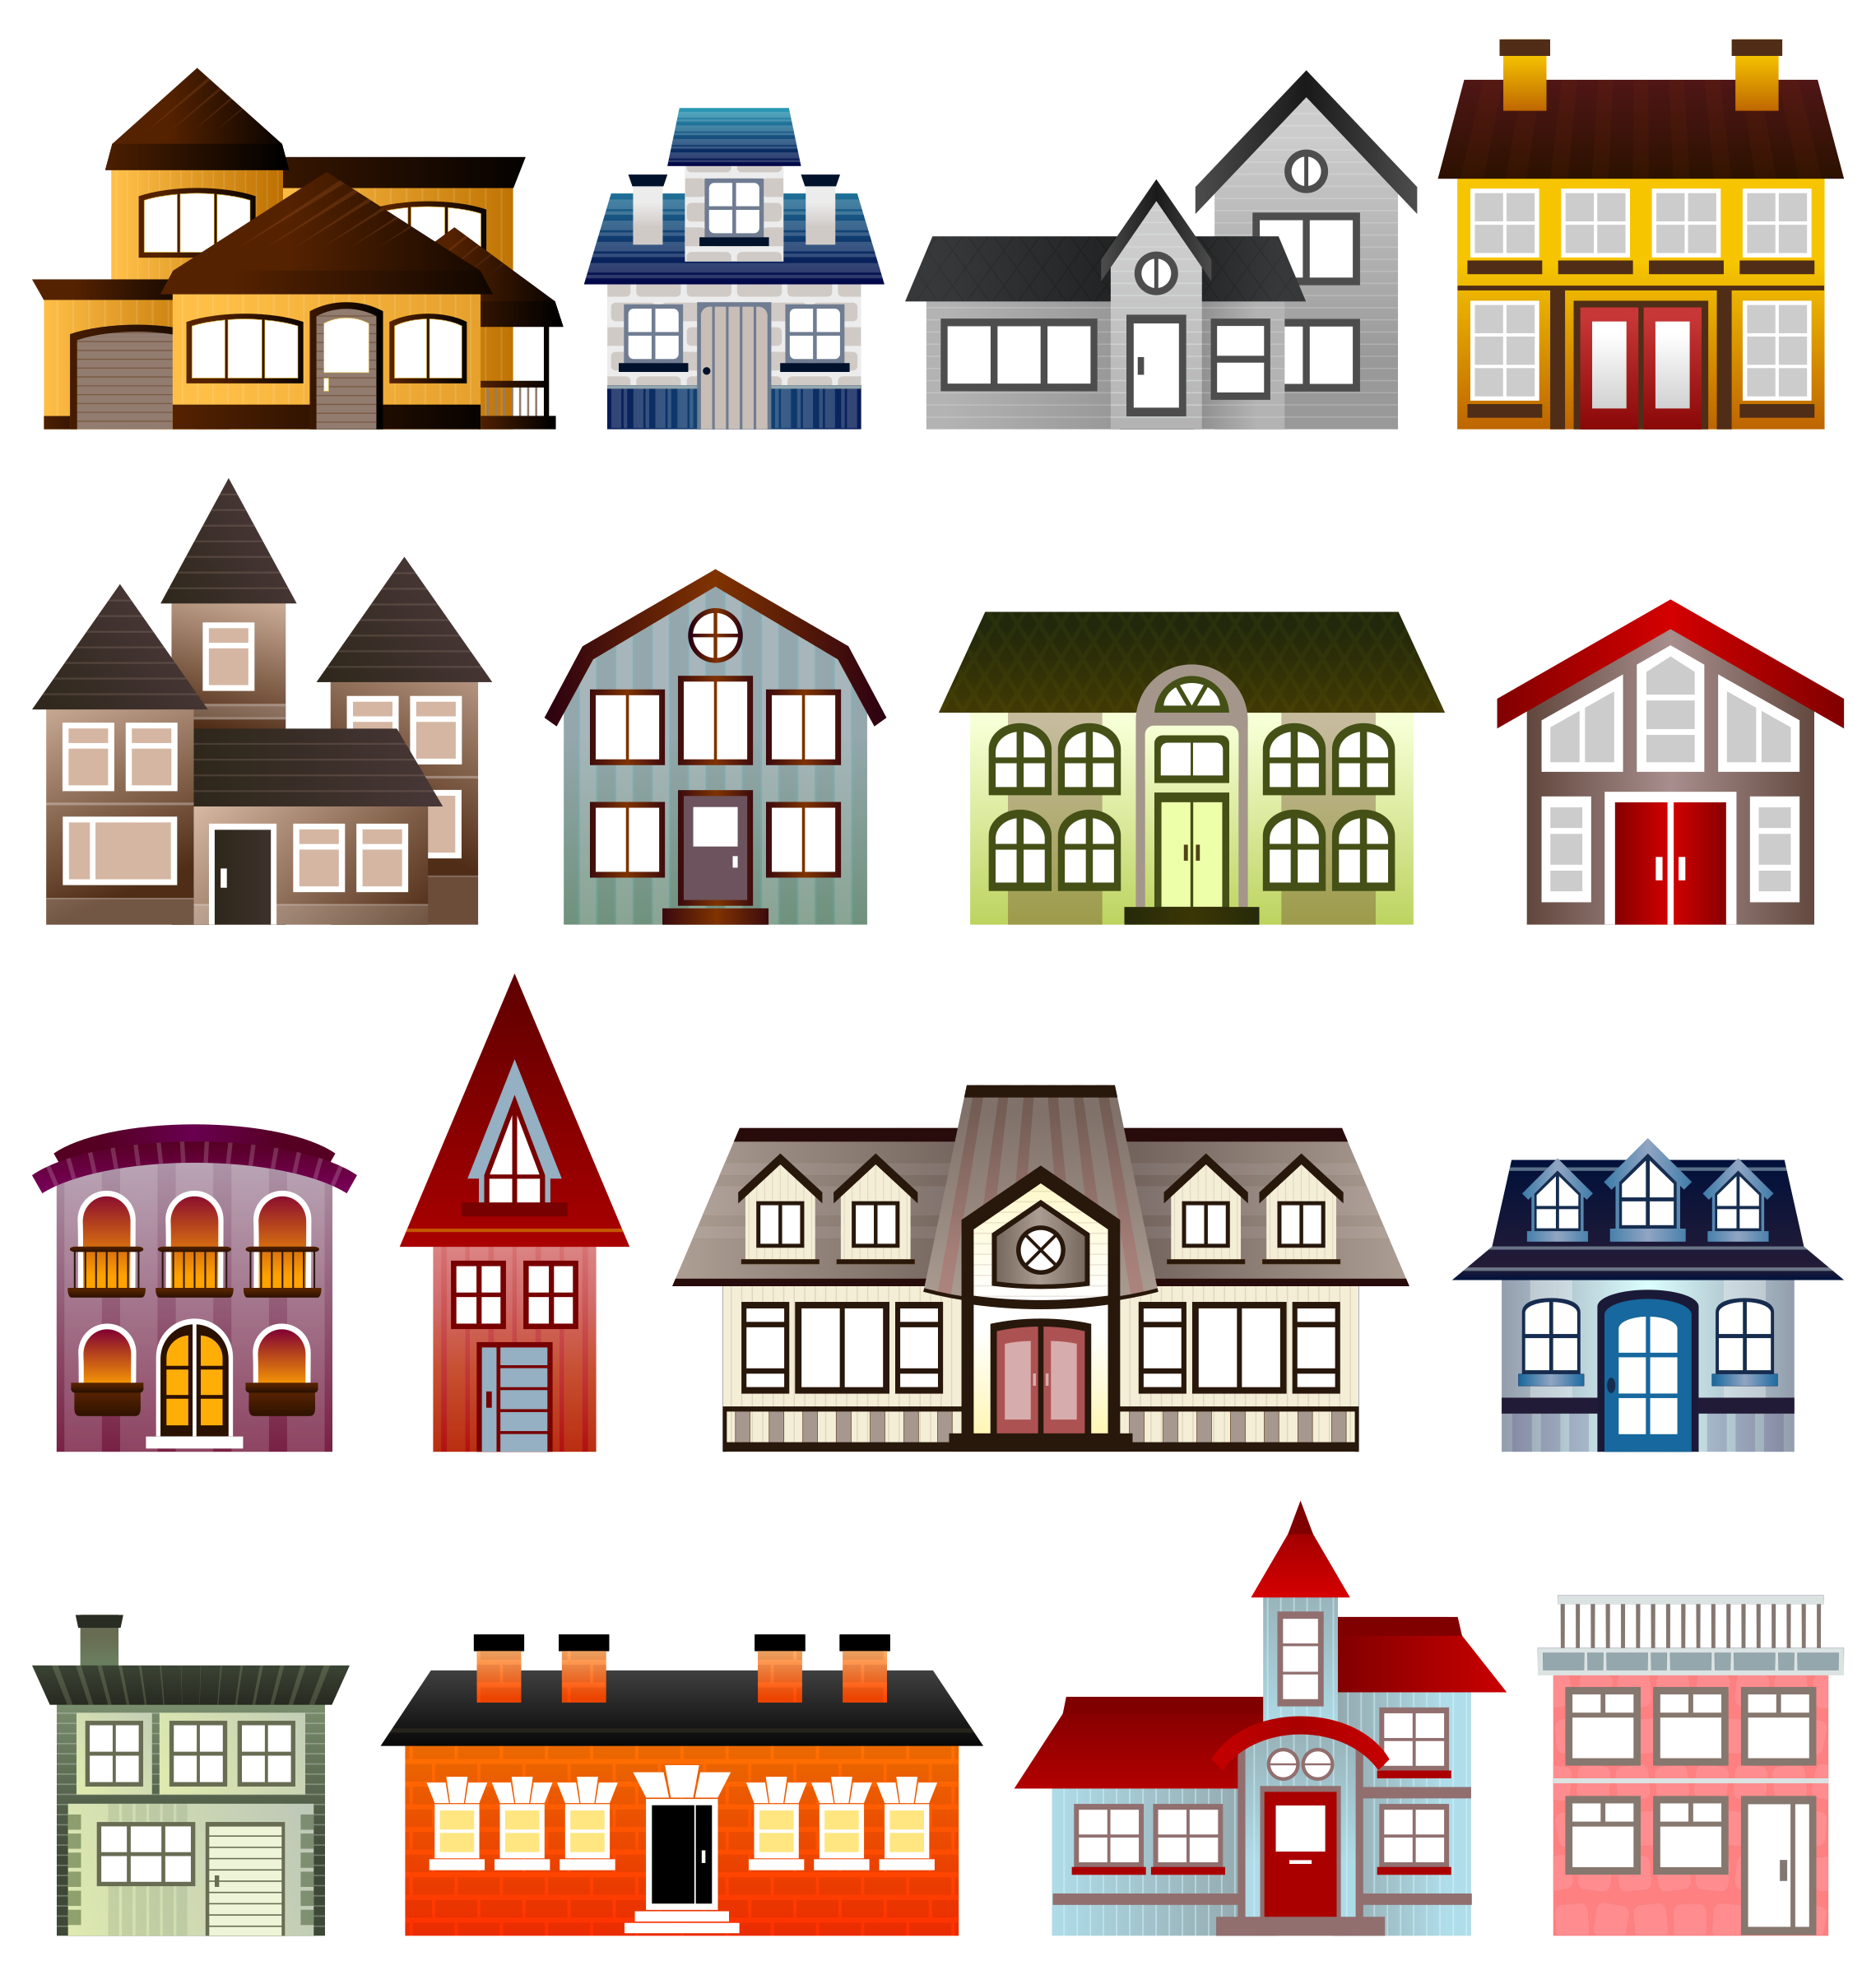 House at night clipart jpg free library Small house vs big house clipart - ClipartFox jpg free library